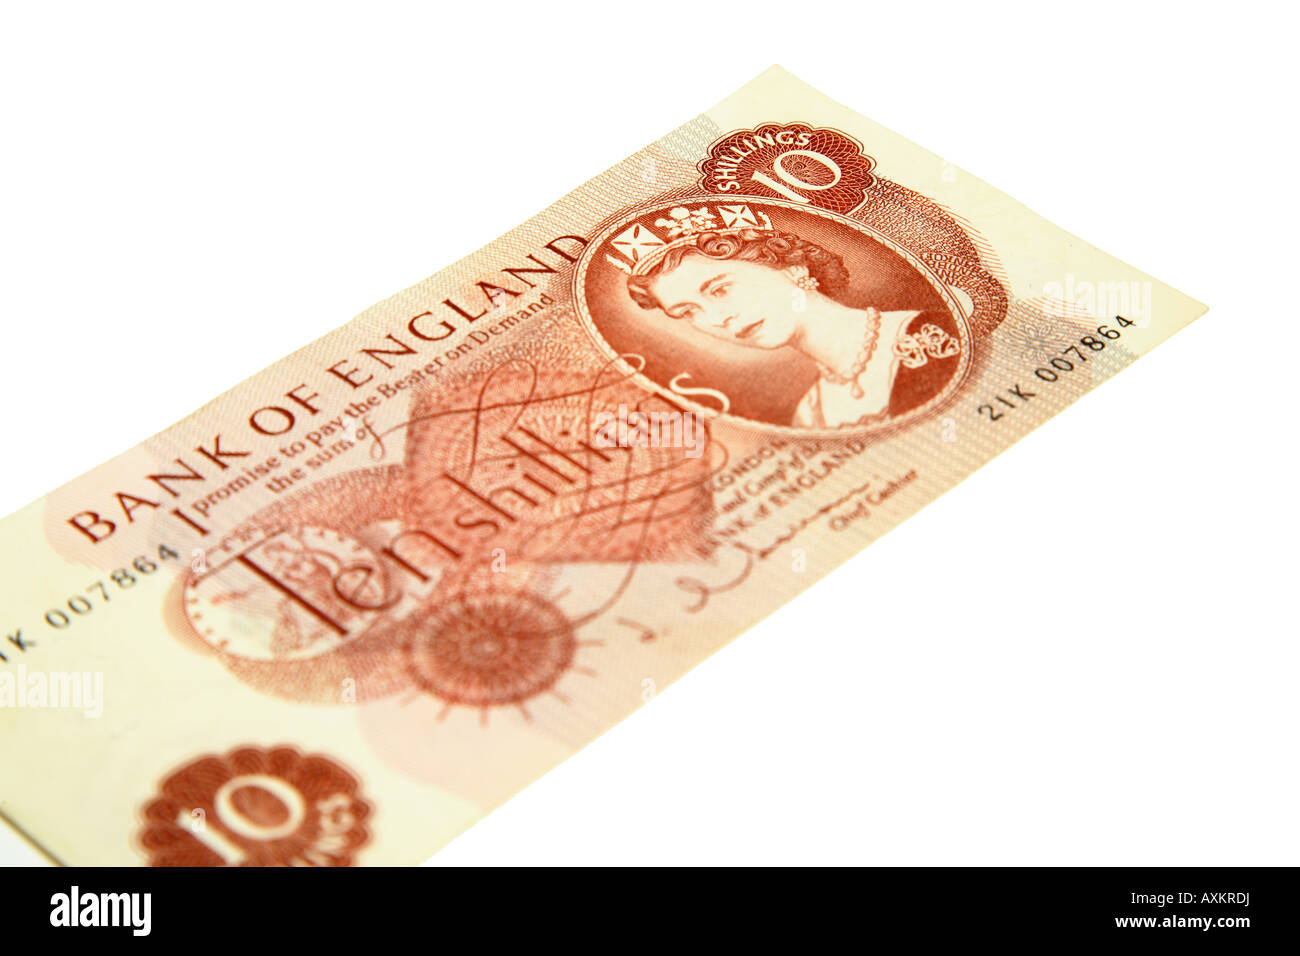 A ten shilling note, pre decimale stirling, on white background - Stock Image